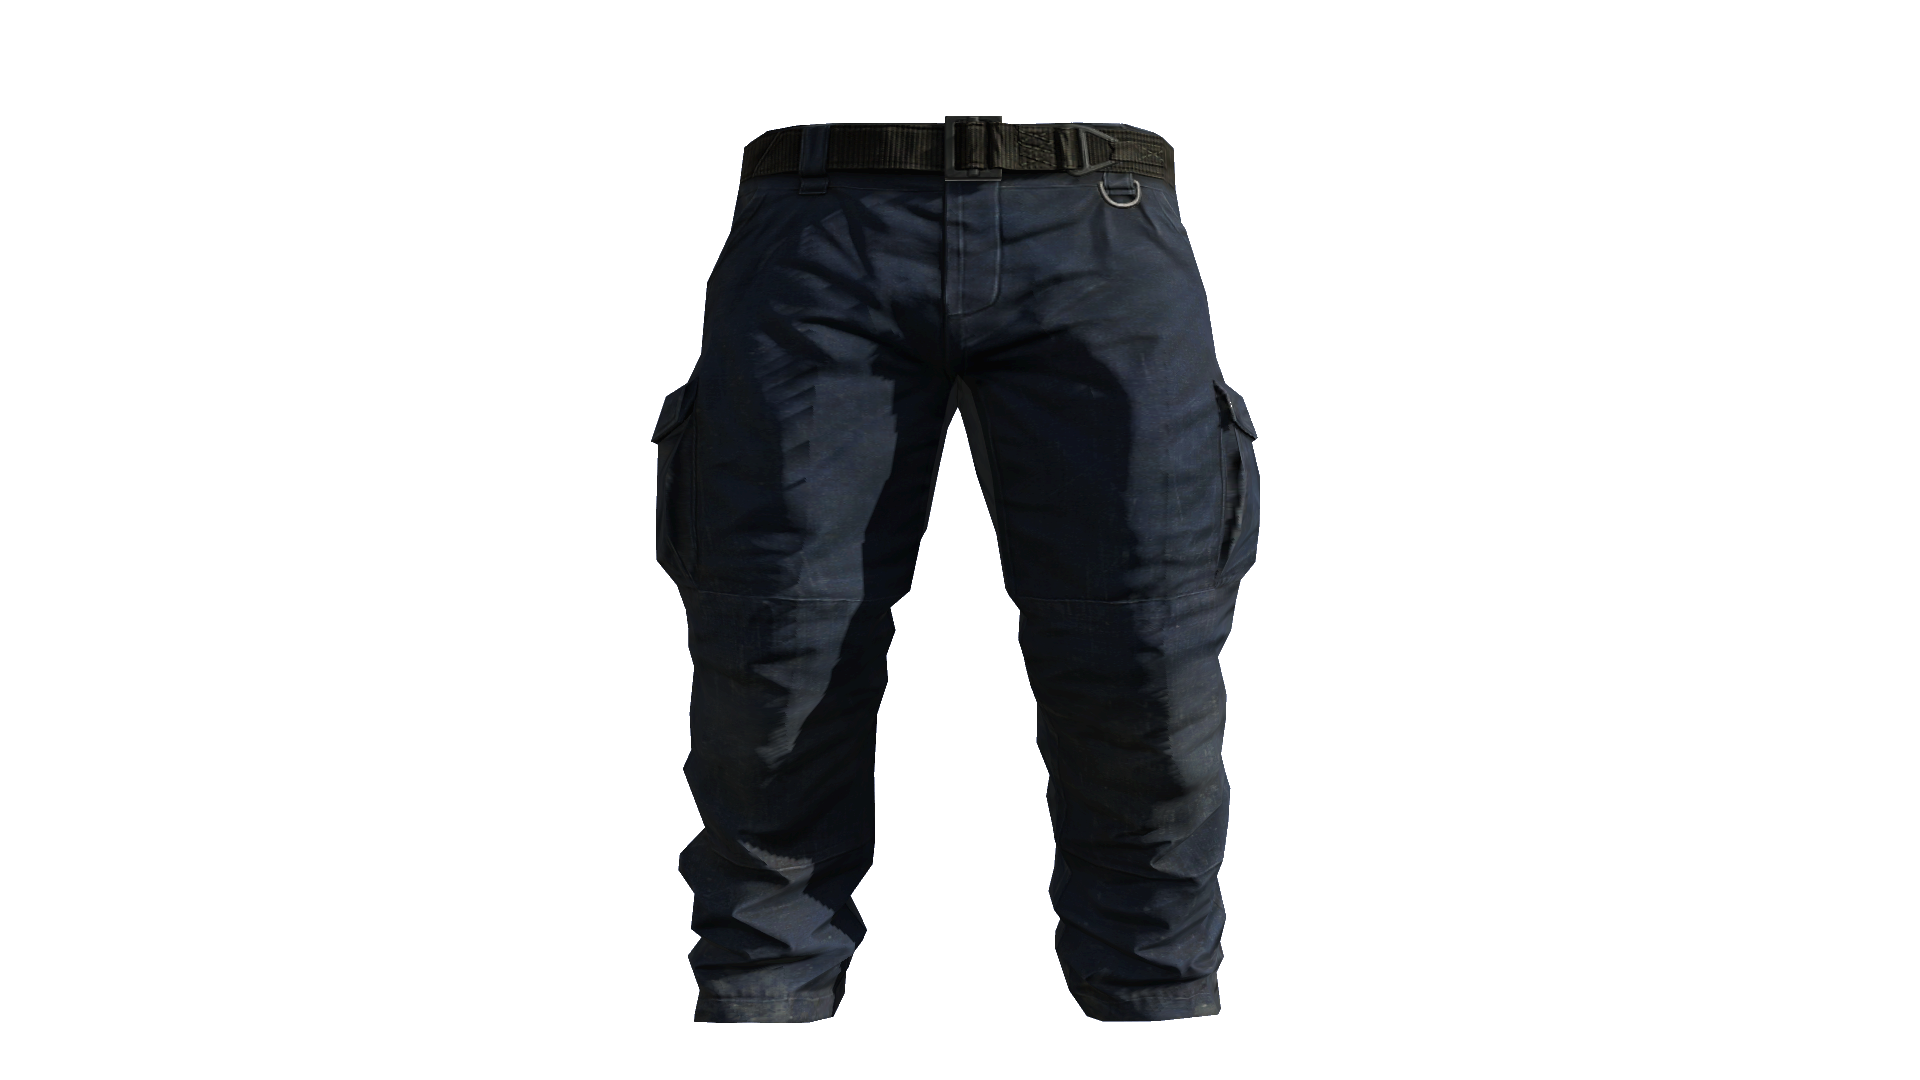 Blue Cargo Pants Model (P-W).png - Pants PNG HD